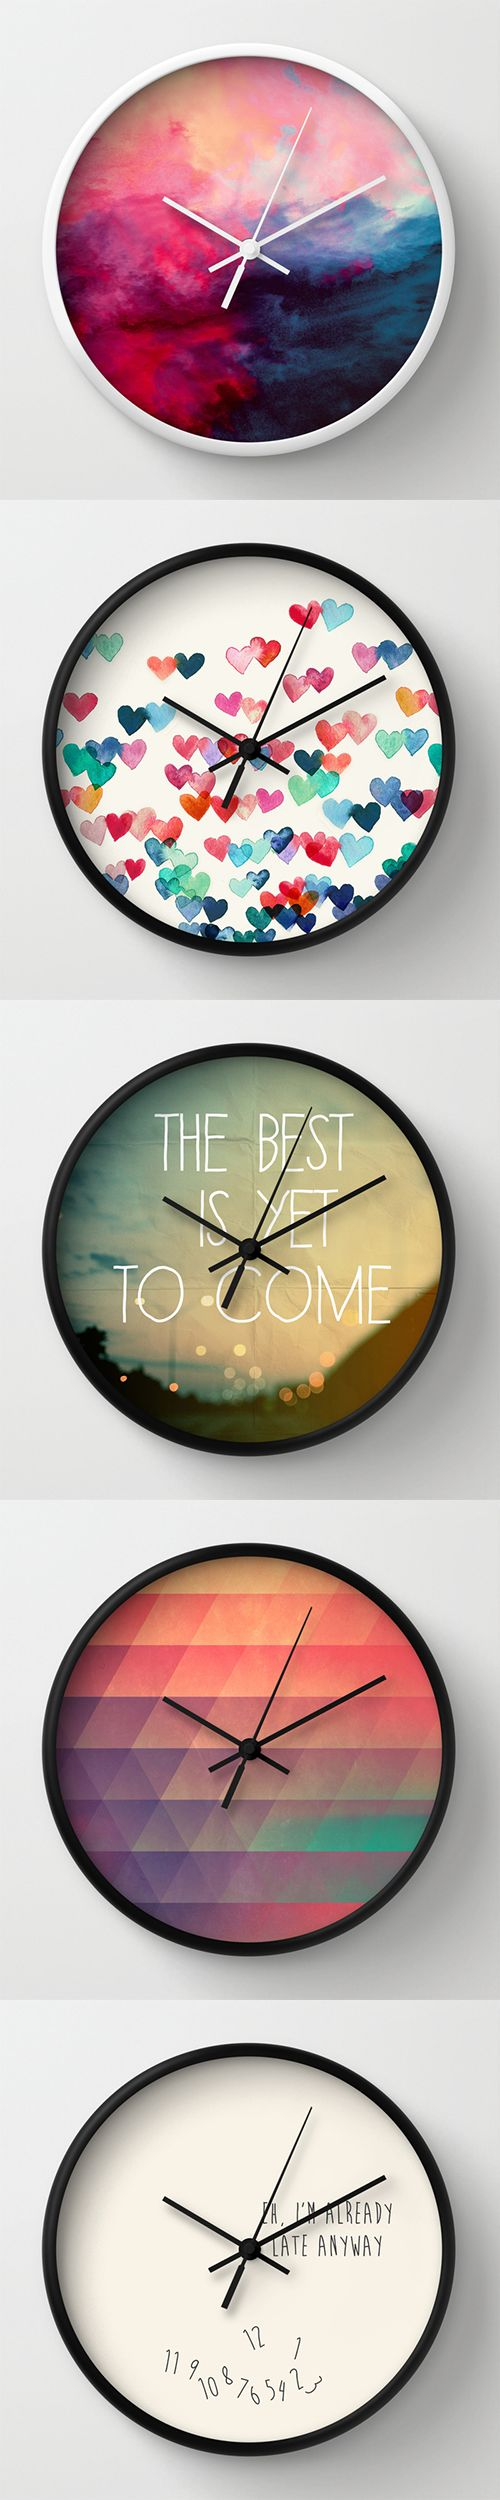 Wall Clocks and millions of other products available atSociety6.com today. Every purchase supports independent art and the artist that created it.  Need More Wall Art Ideas? Visit Centophobe.com (Never an Empty Room)